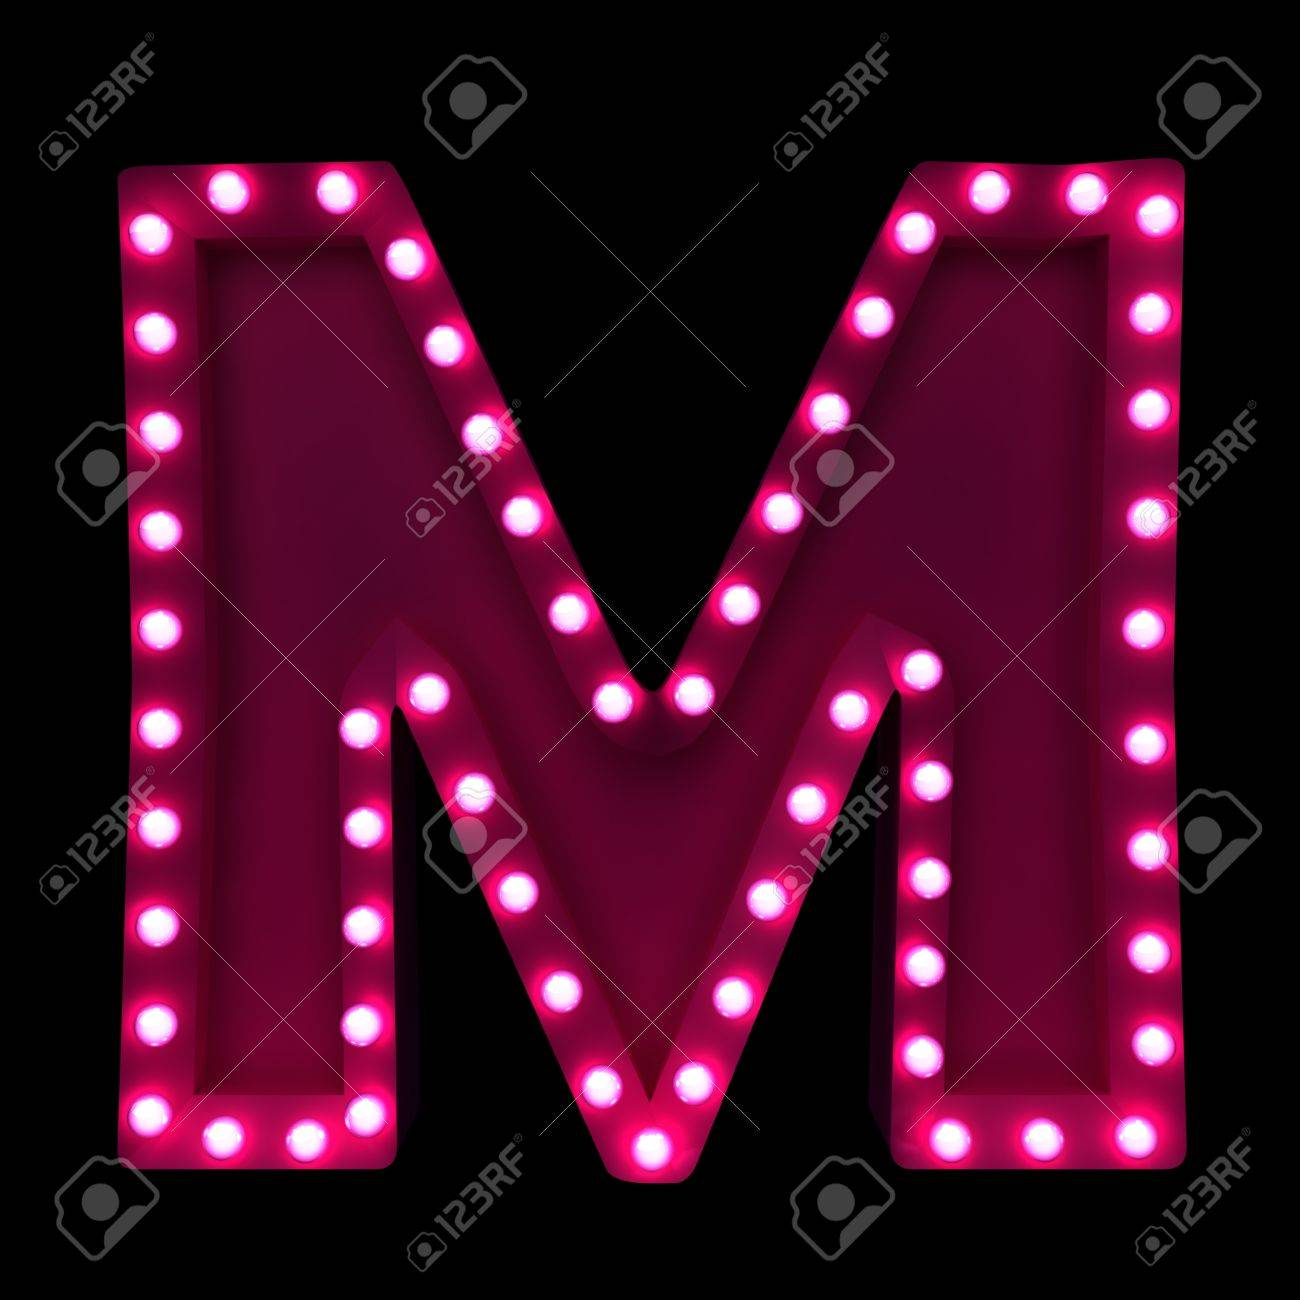 letters with neon lights isolated on black background Stock Photo - 16292682